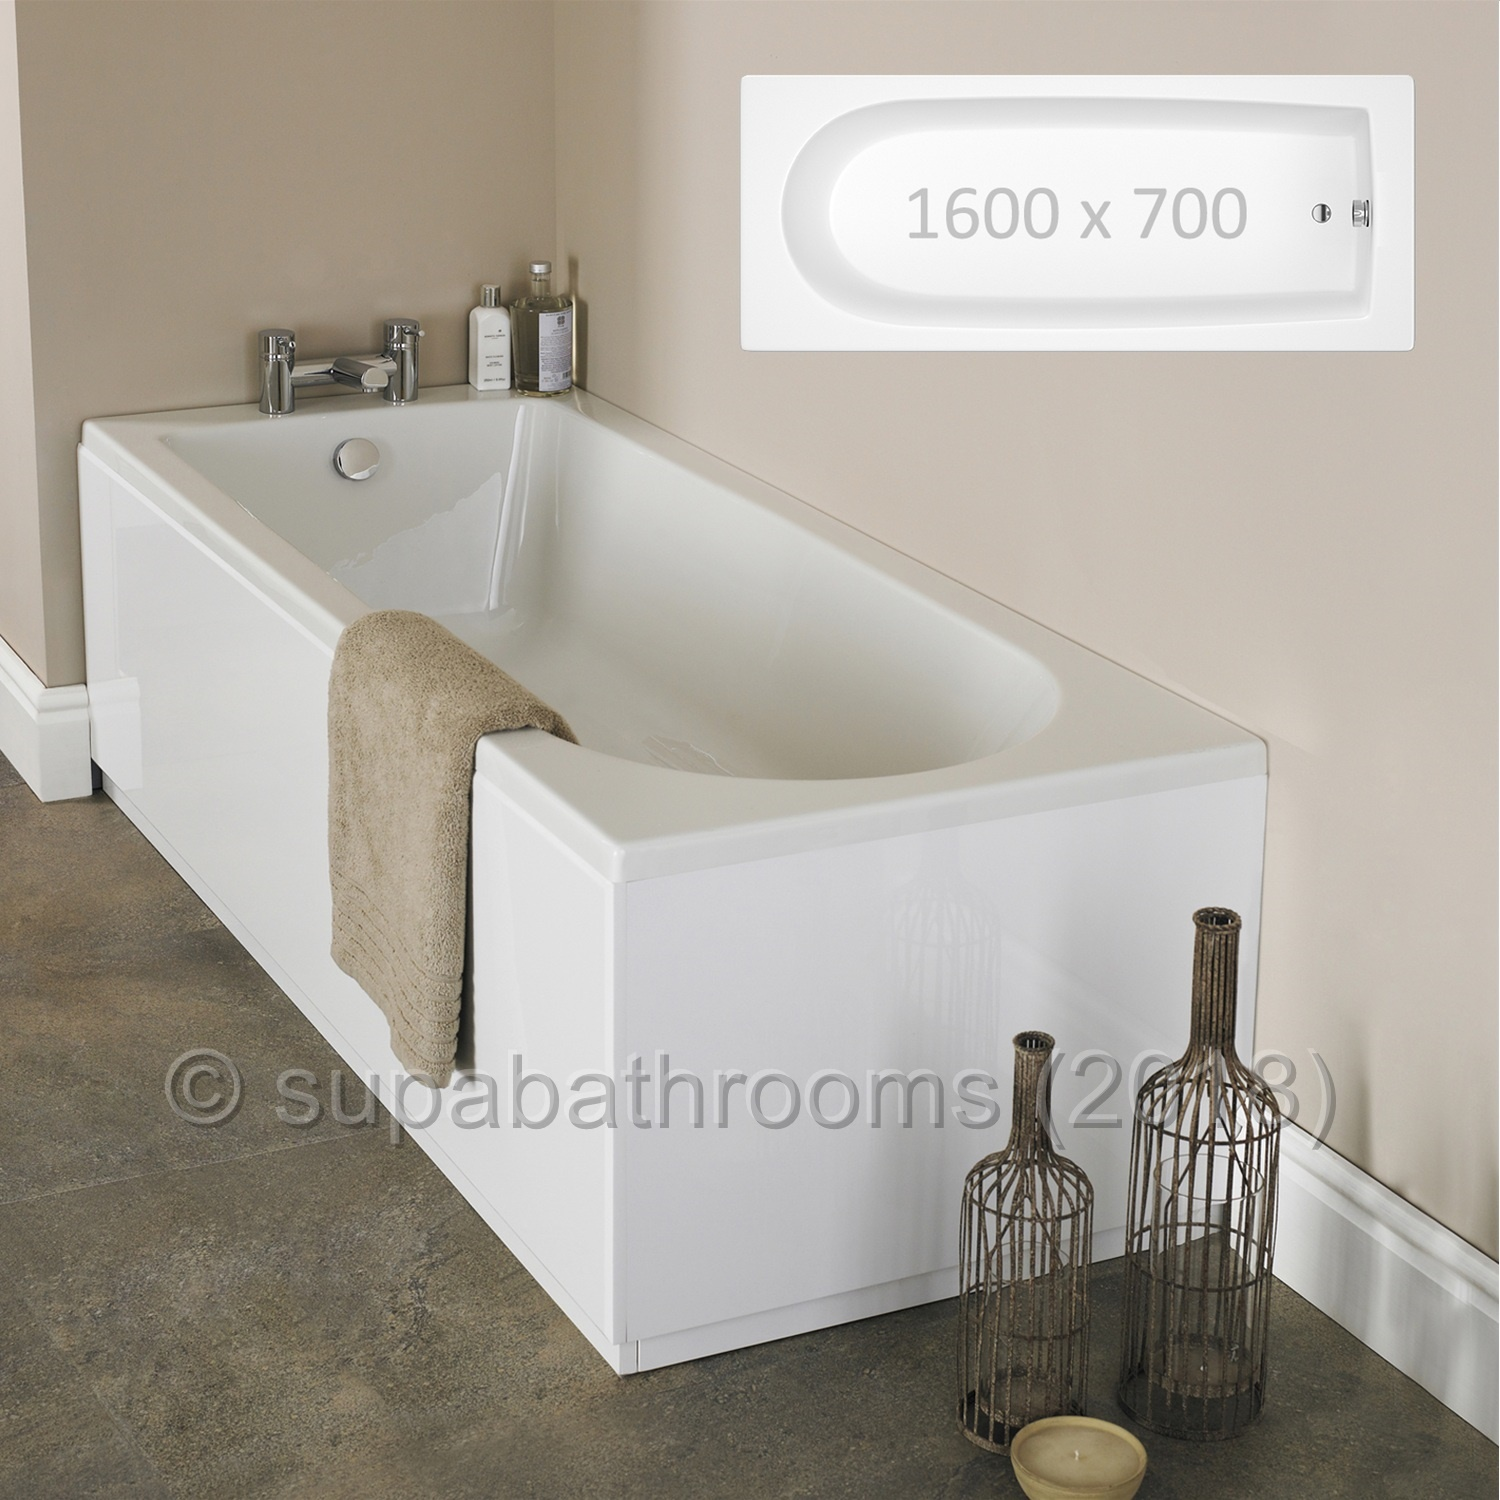 1600x700 Barmby Single Ended Fibreglass Encapsulated Acrylic Bath ...